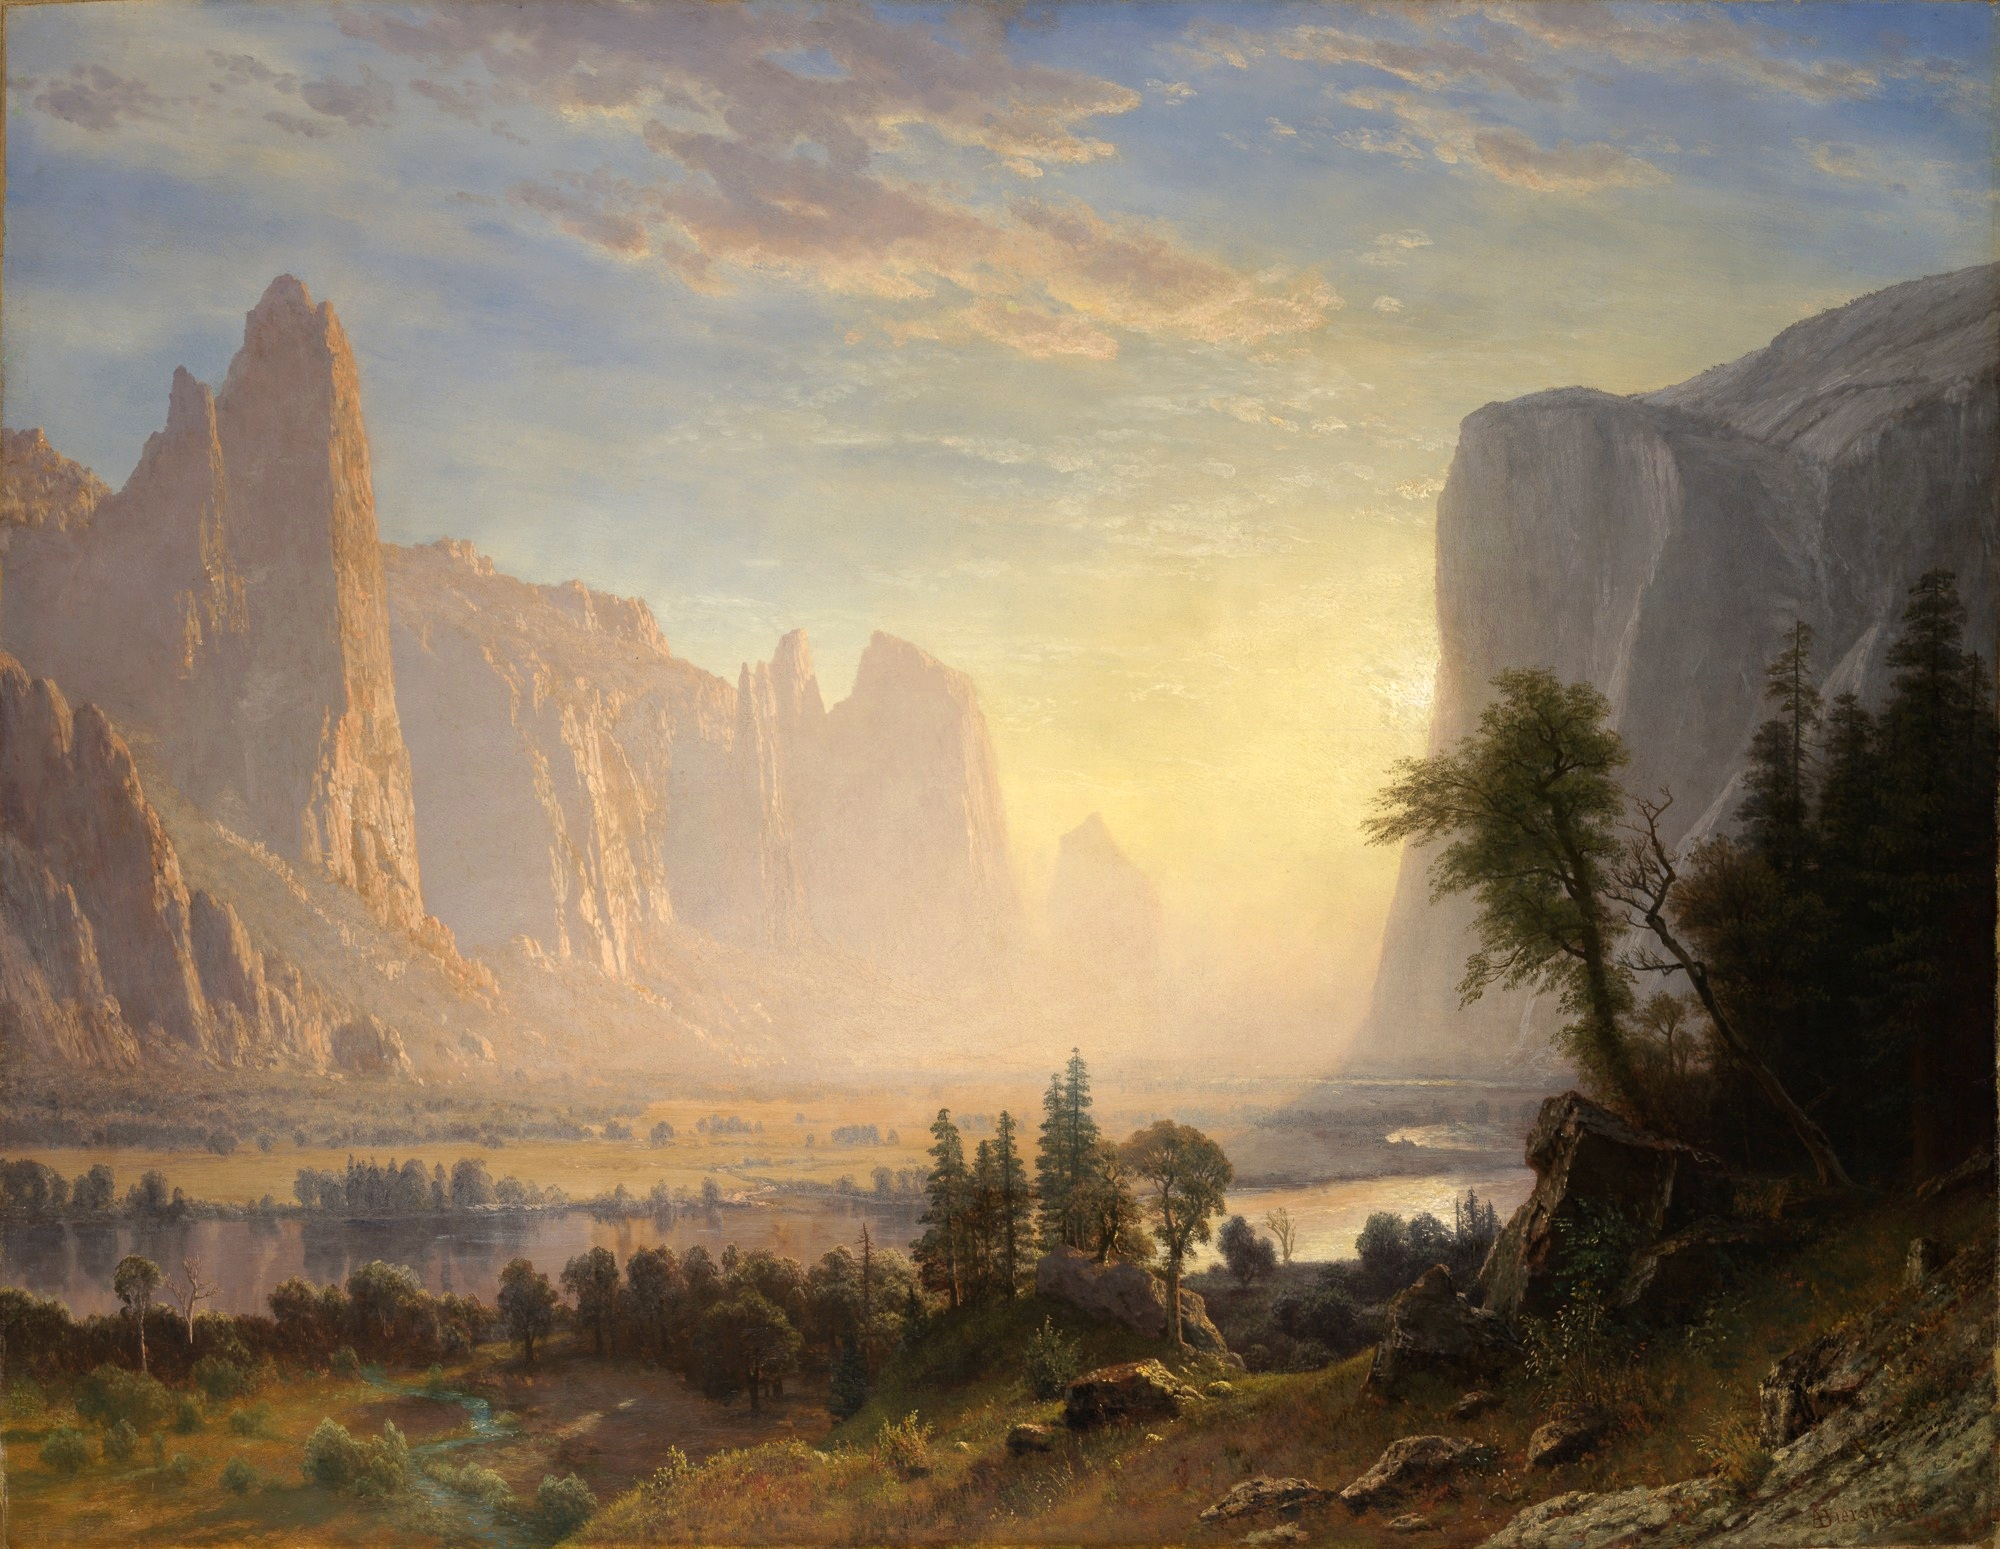 Valley of the Yosemite by Albert Bierstadt 1868